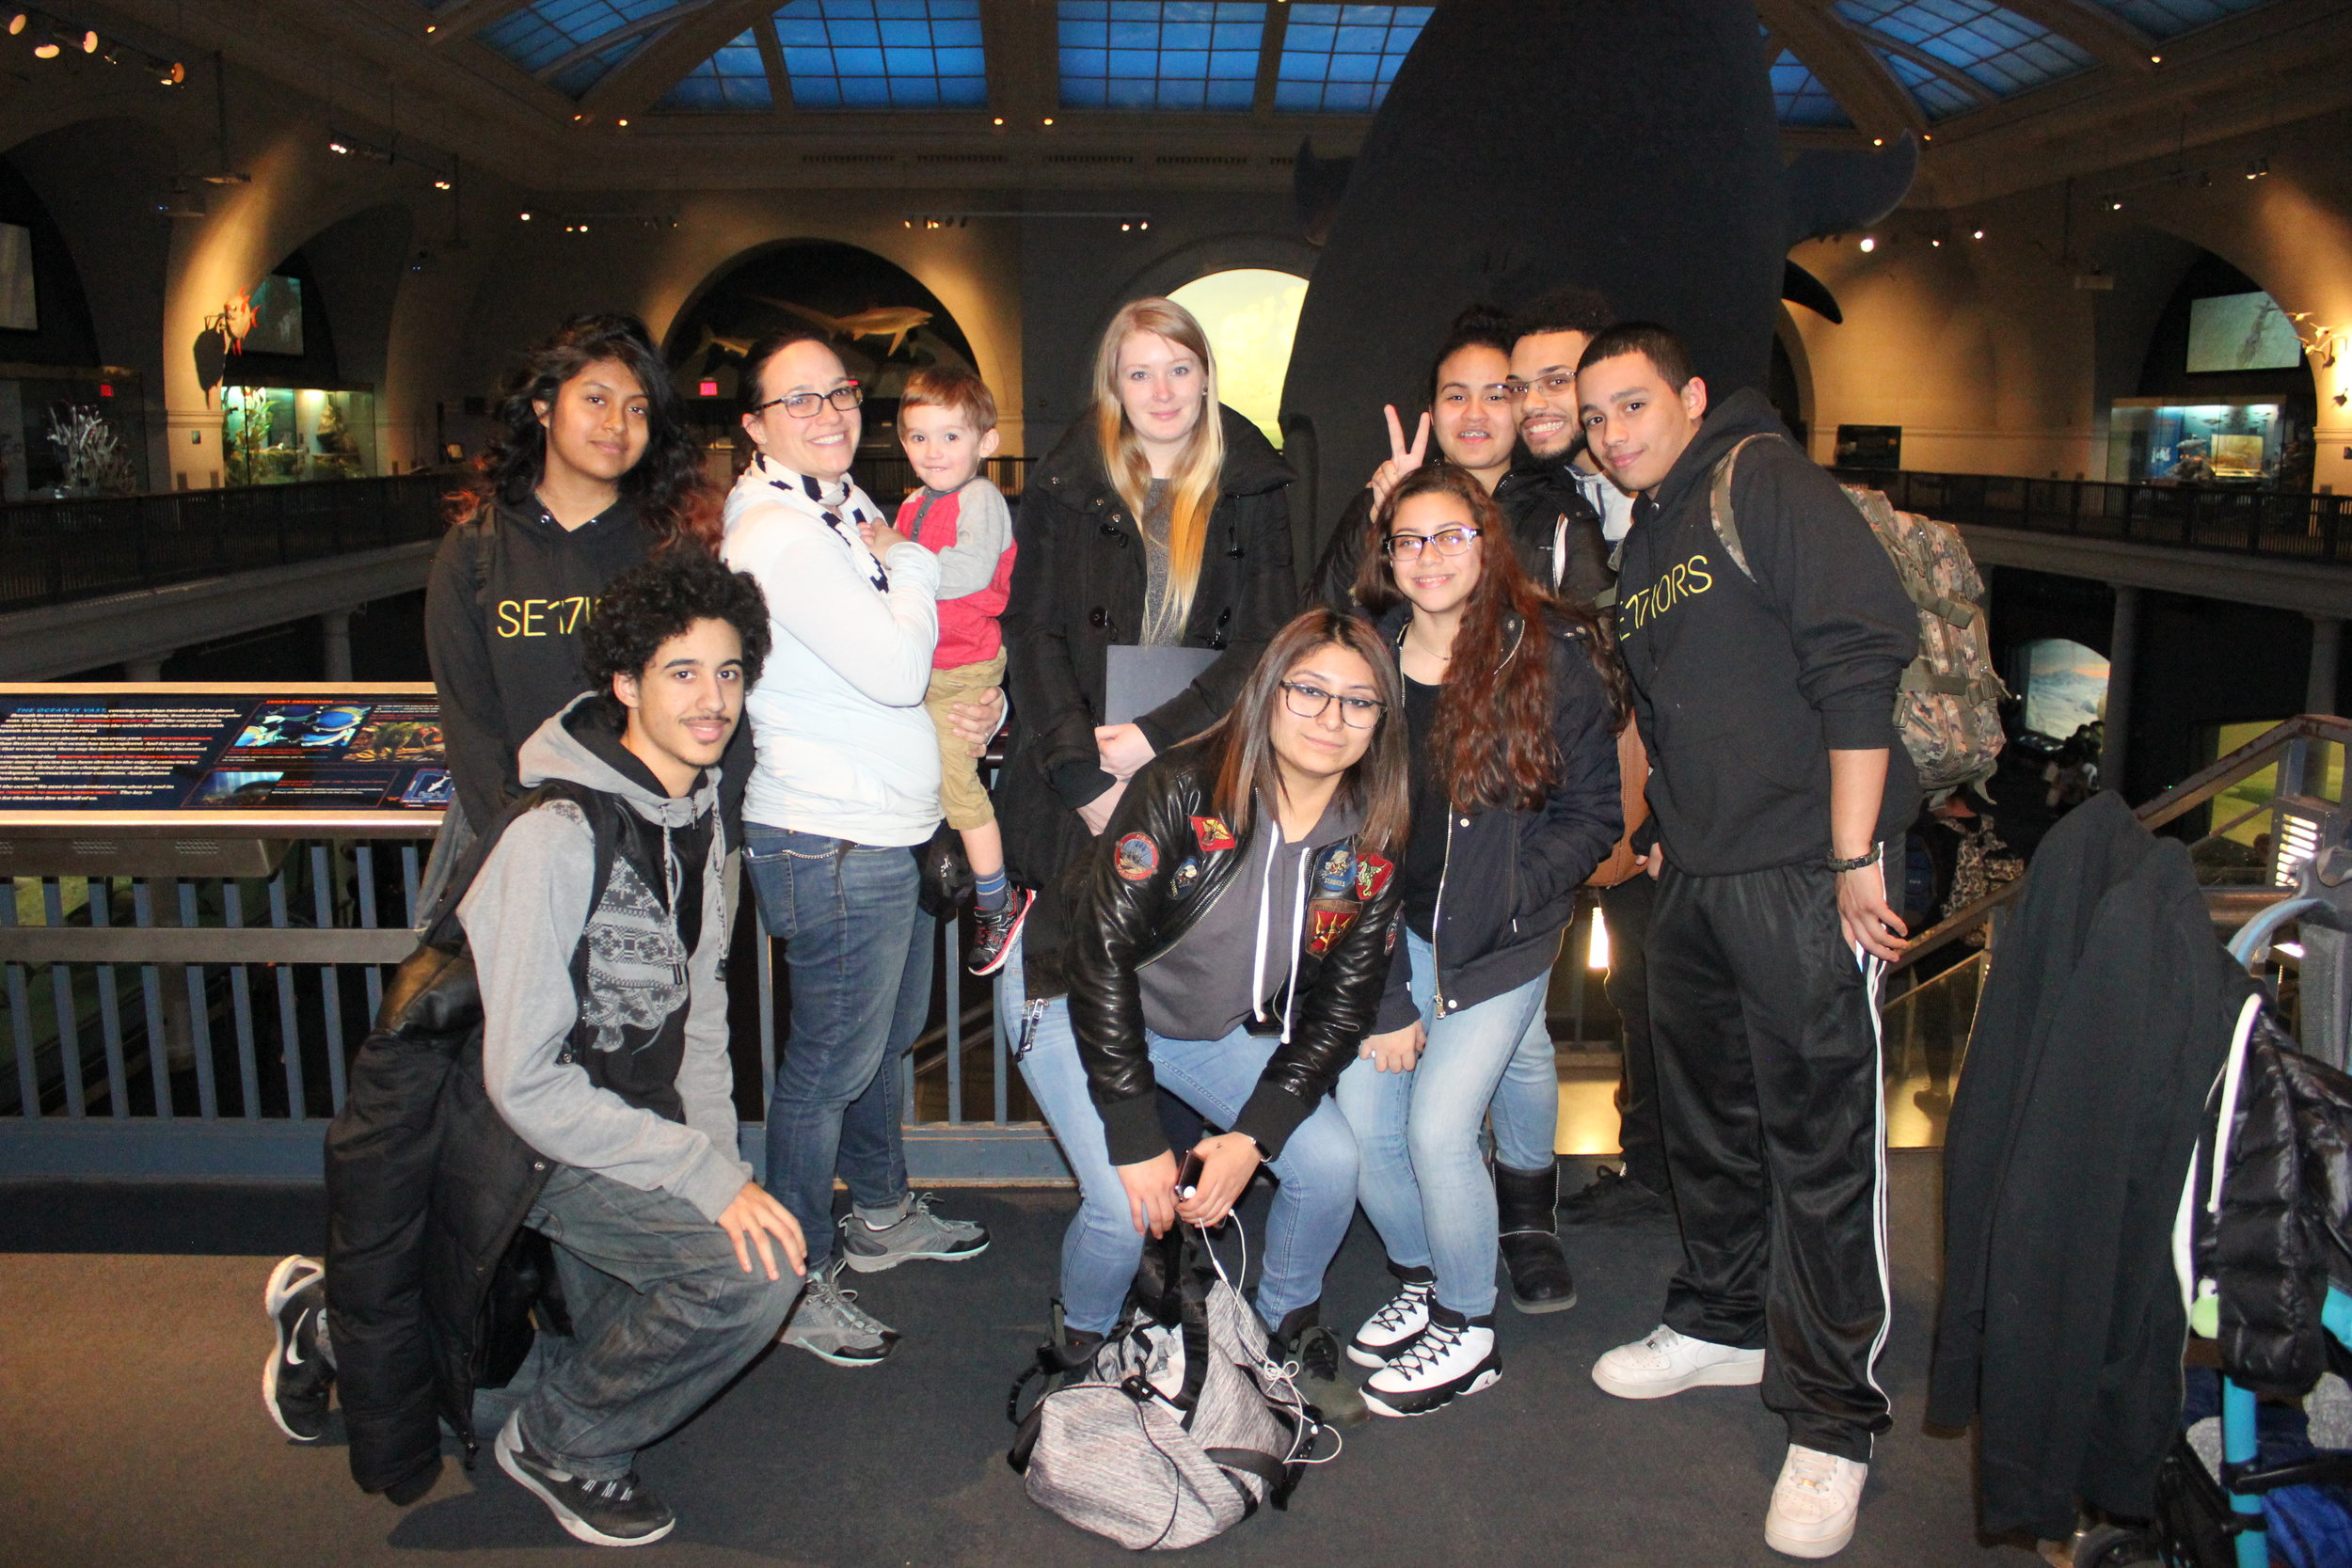 Trip to the Natural History Museum! - The High School for Law, Advocovy, and Community Justice visited the Natural History Museum with CITYarts to explore the Planitarium!